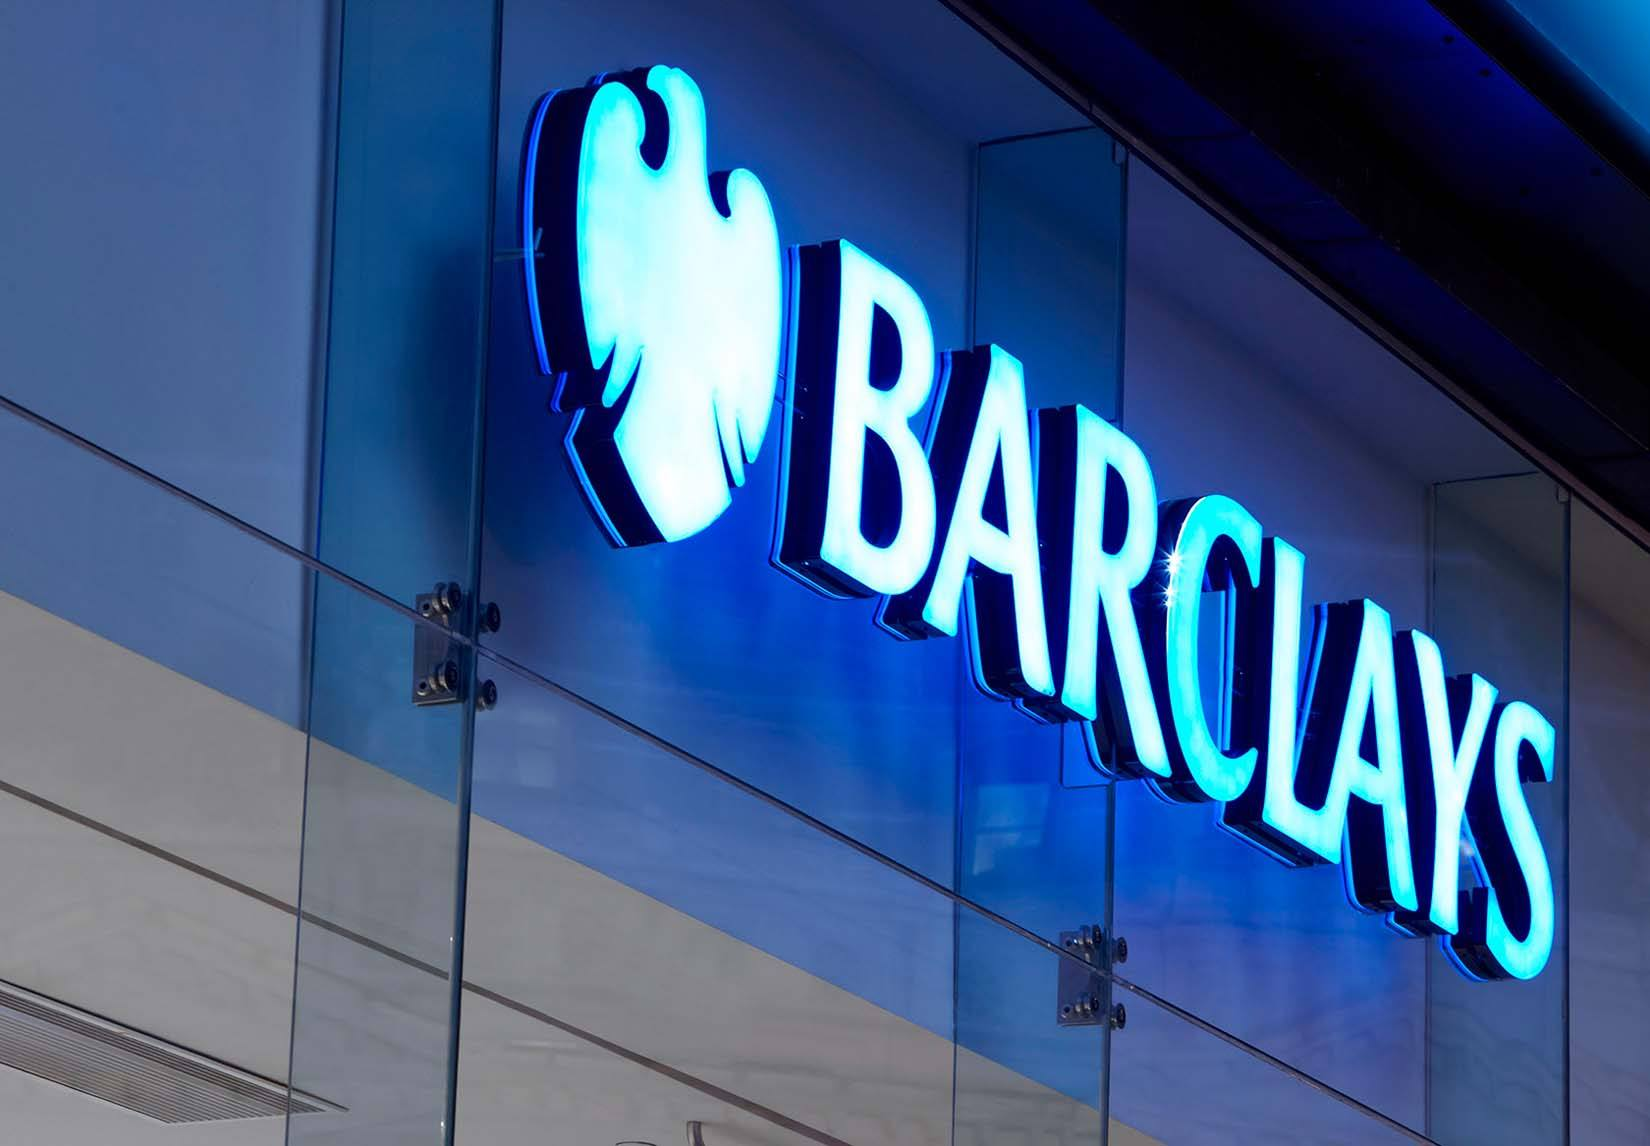 WMH-BARCLAYS-BRAND-SIGN-WEB image